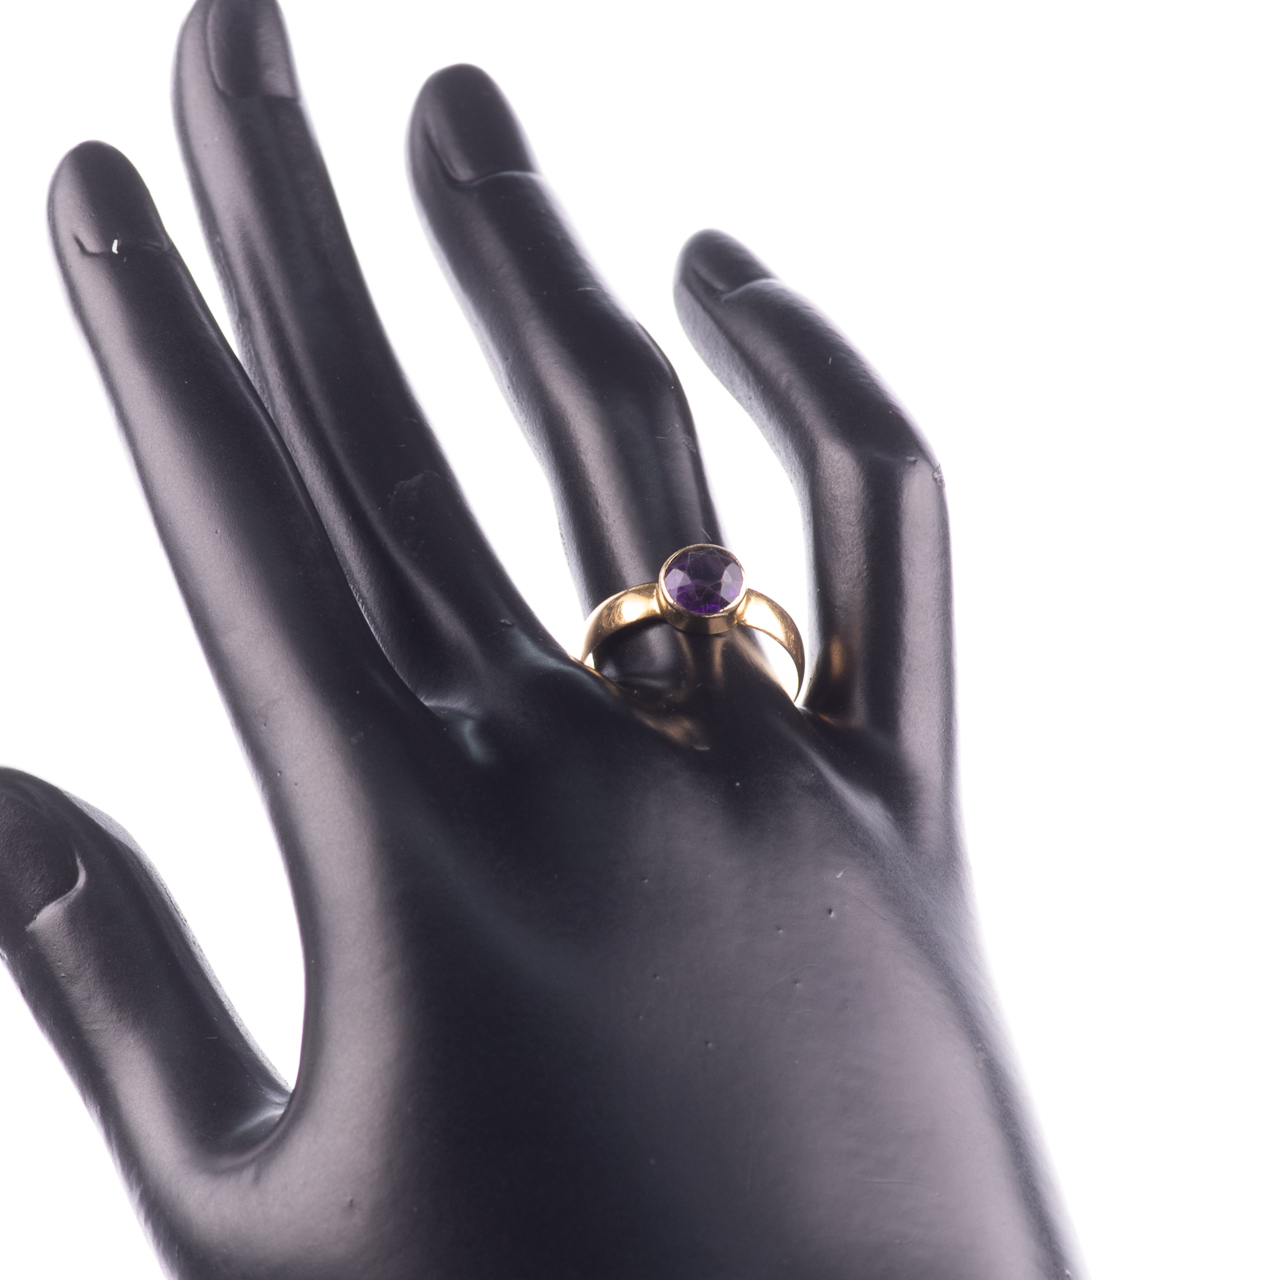 22ct Gold Victorian Amethyst Ring Chester 1899, Howard & Walsh - Image 2 of 7